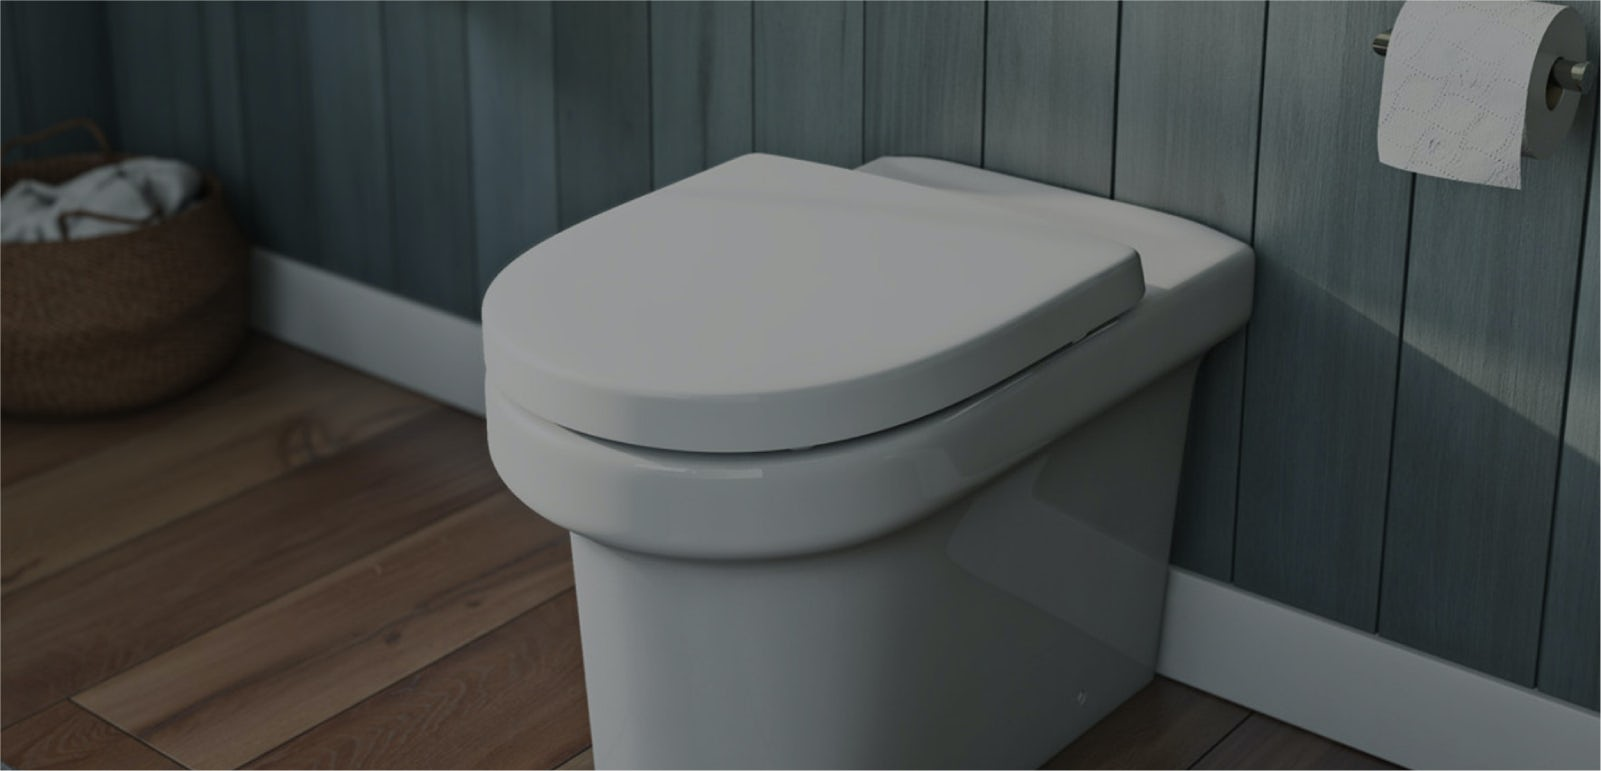 Modern Fixes: How to fit a toilet seat